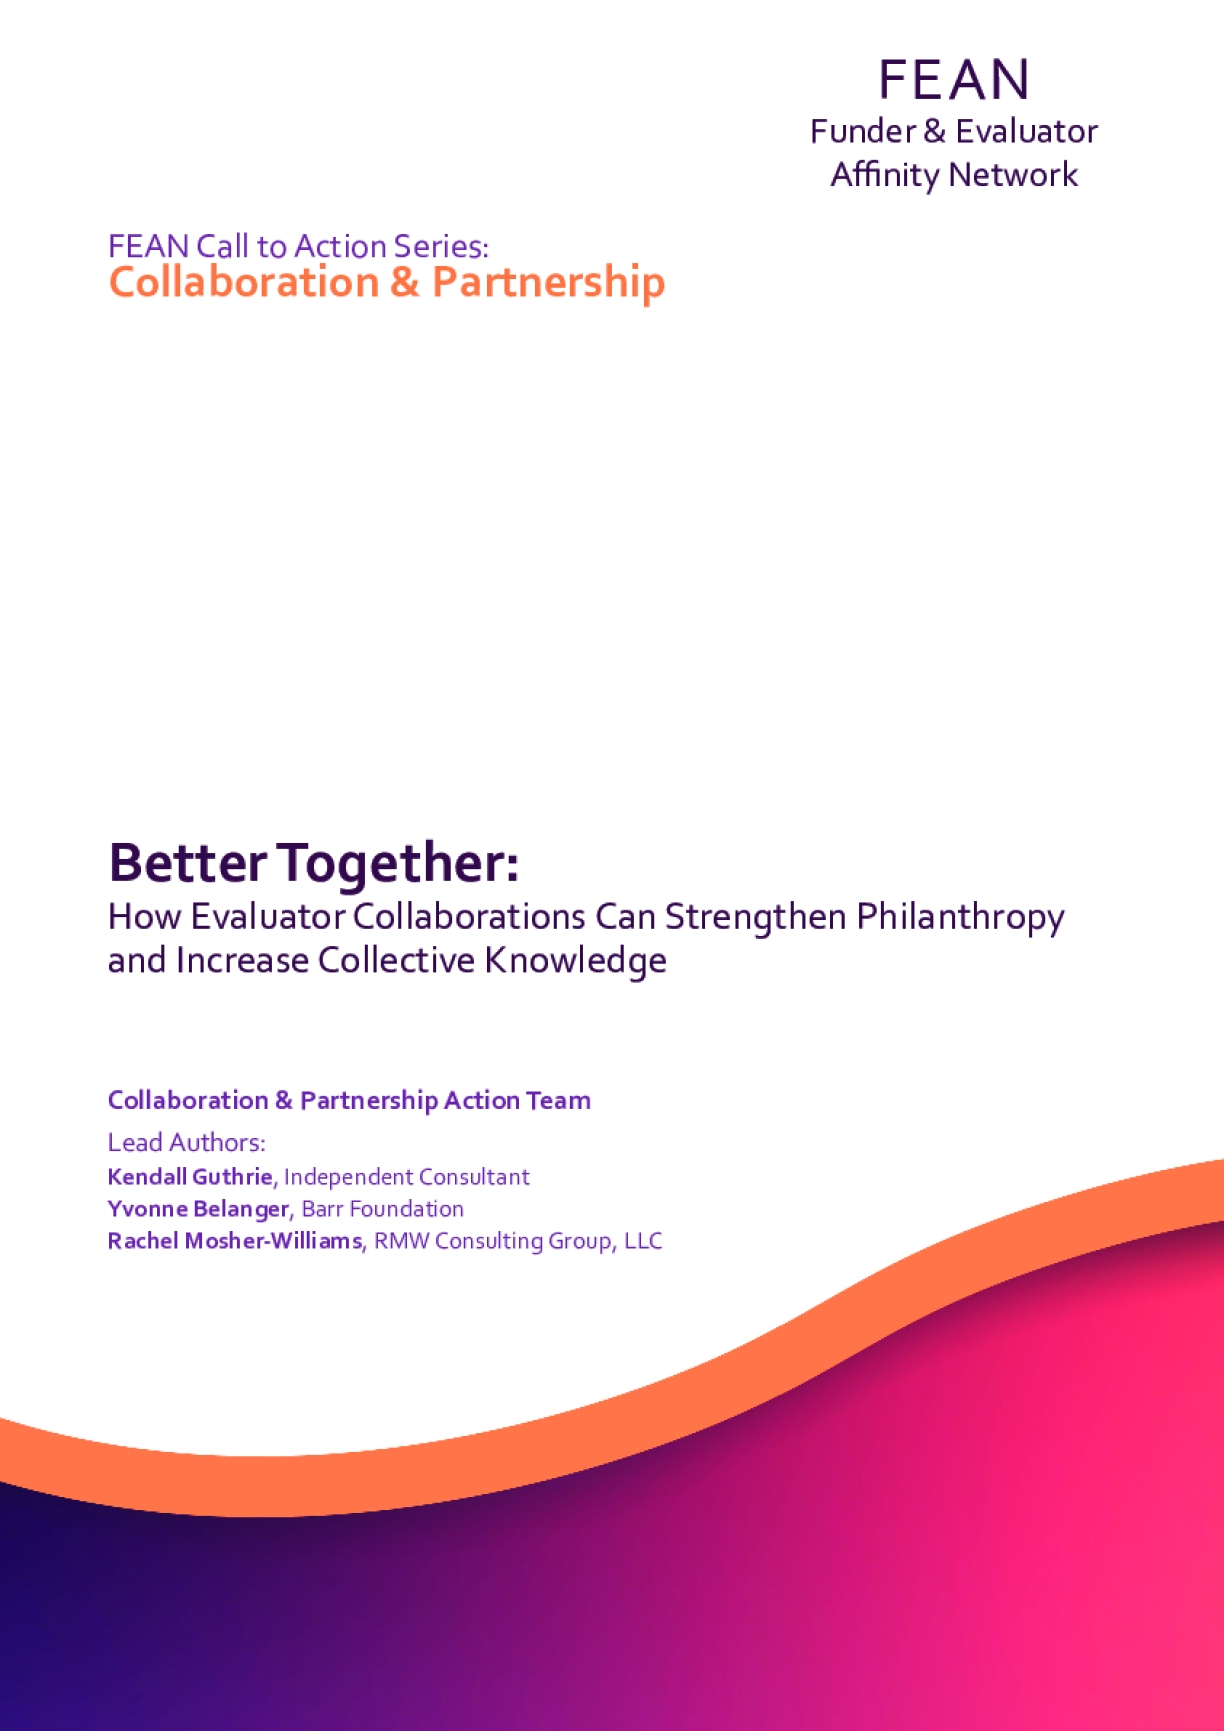 Better Together: How Evaluator Collaborations Can Strengthen Philanthropy and Increase Collective Knowledge